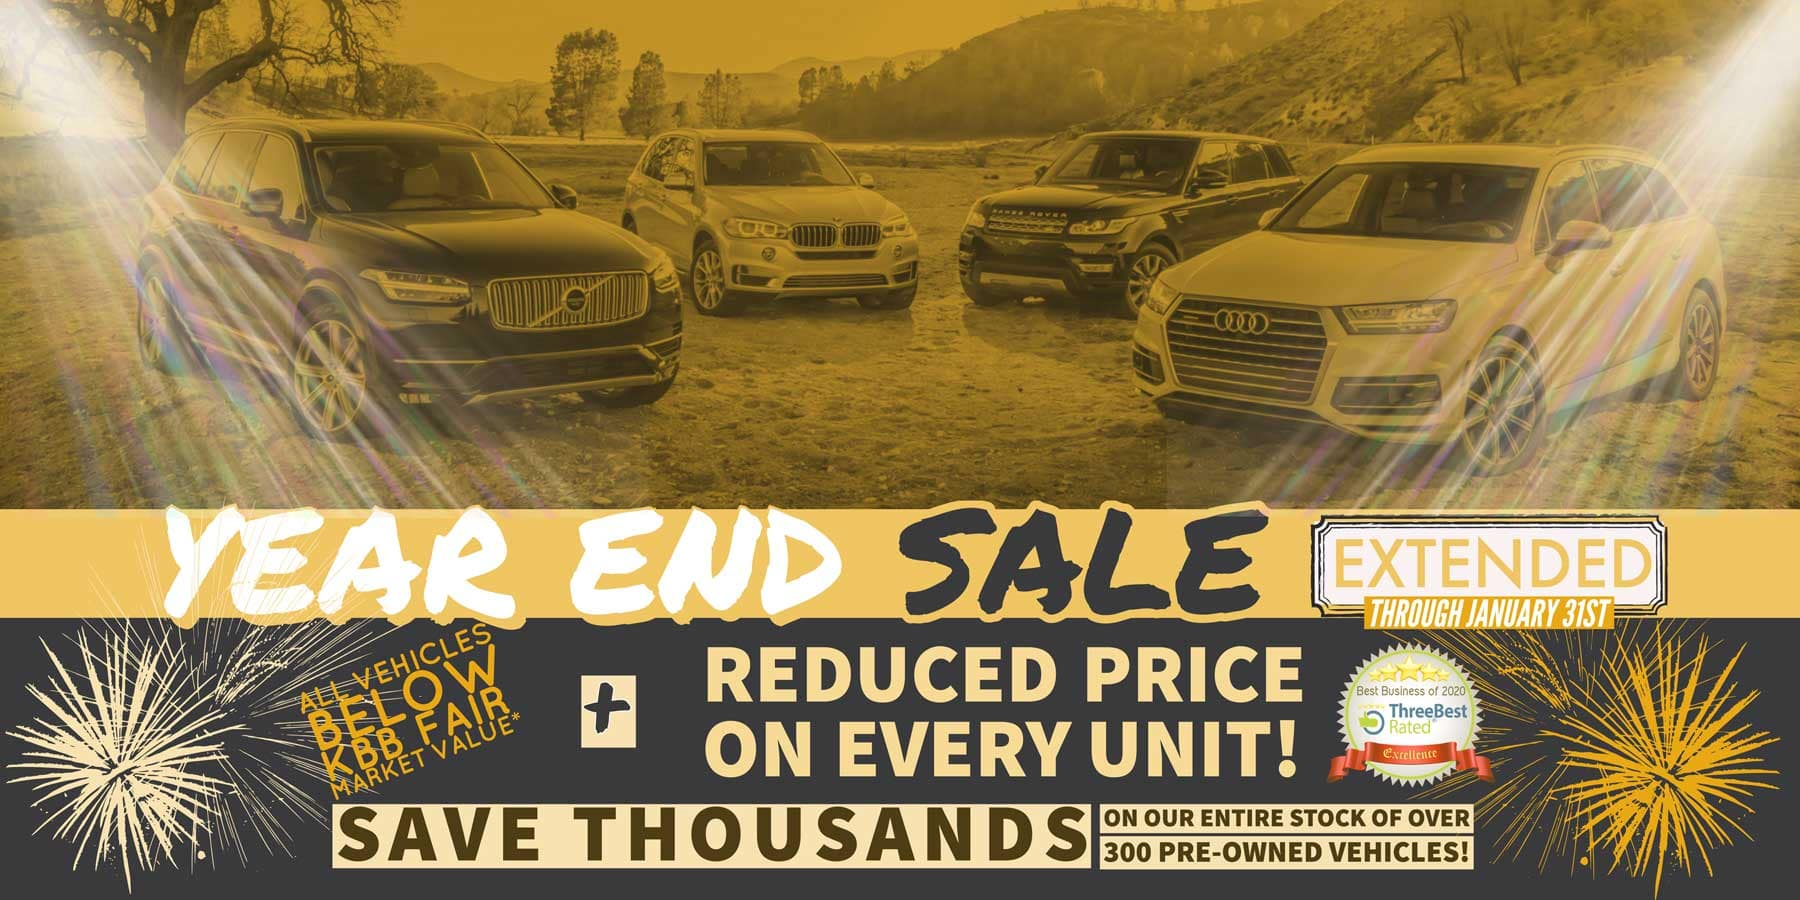 Year-End Used Sales Event Extended Through January 31st